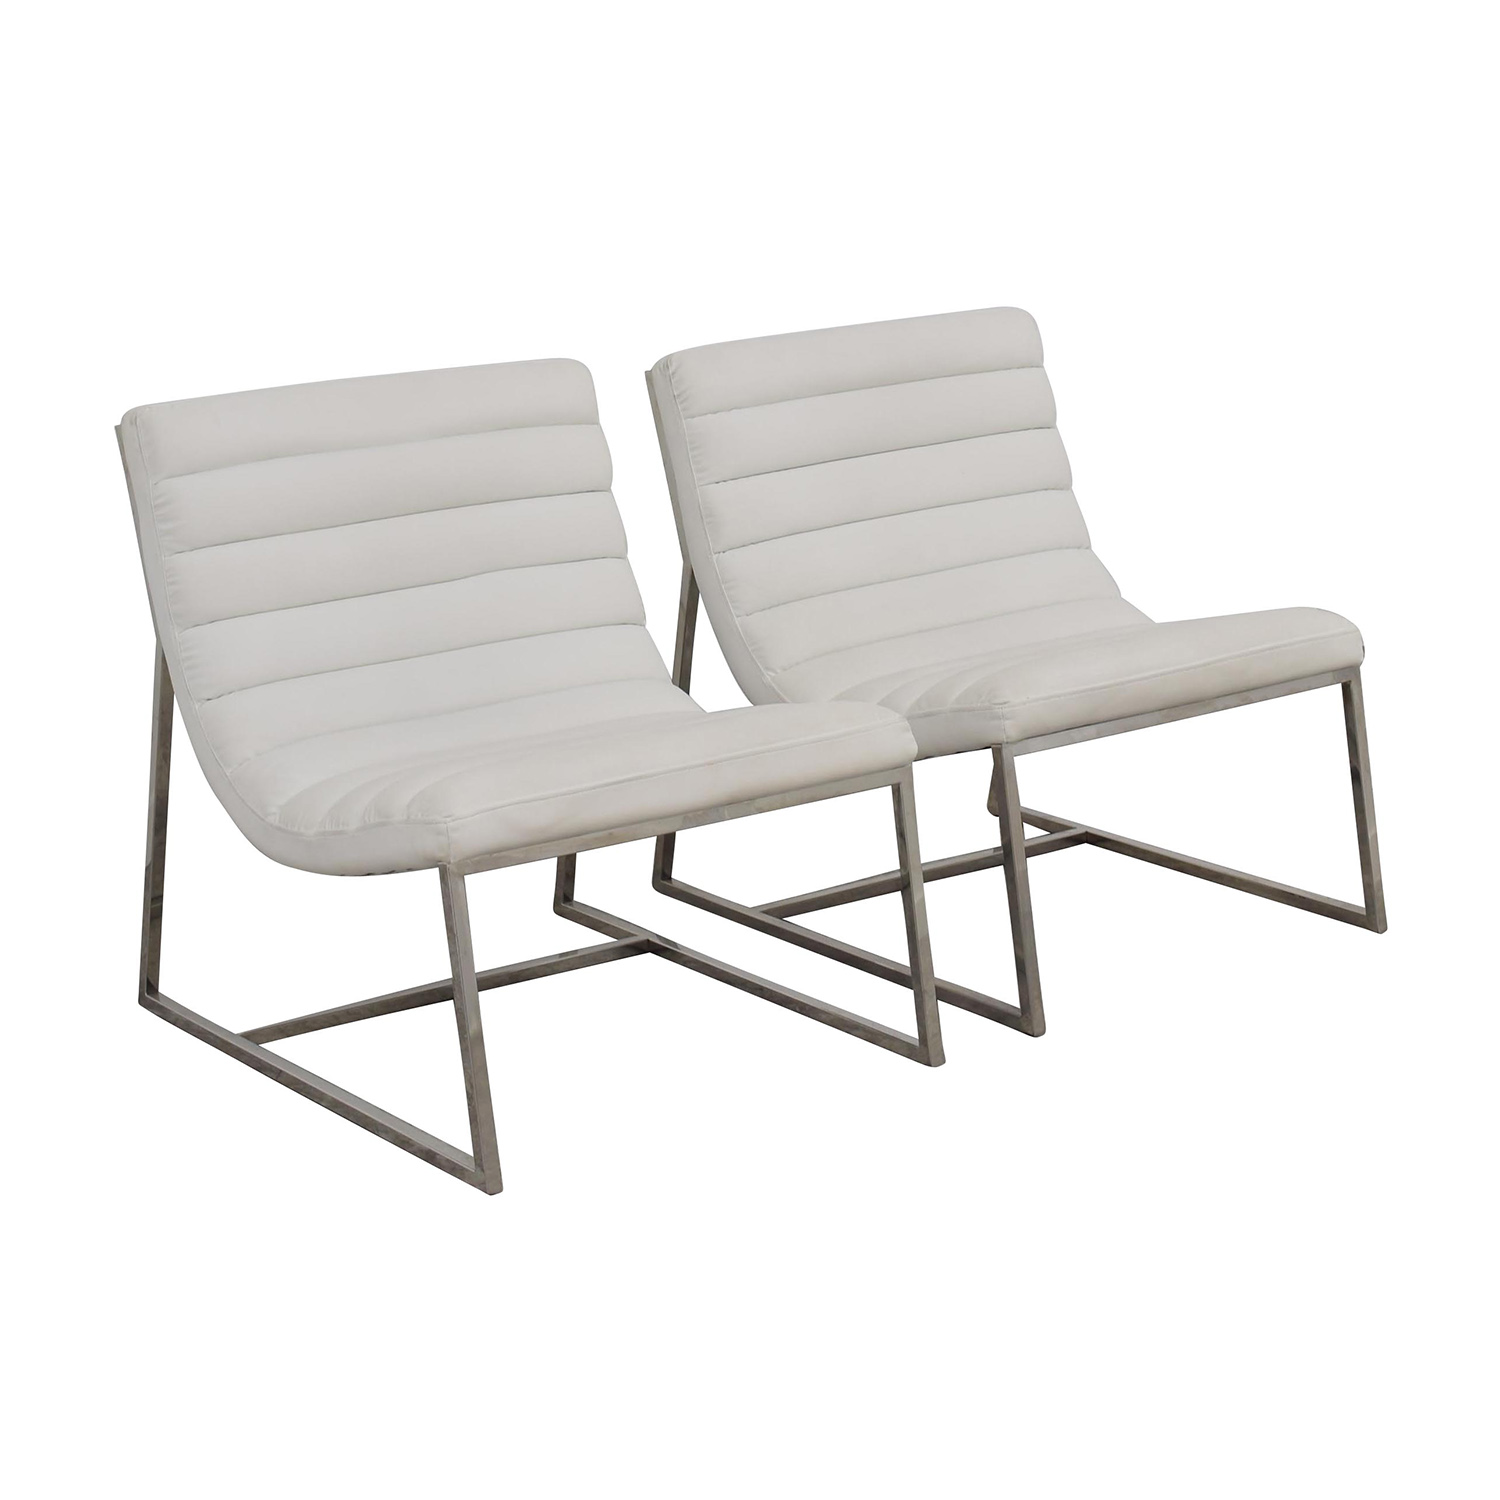 White Leather Sofa Chairs Second Hand